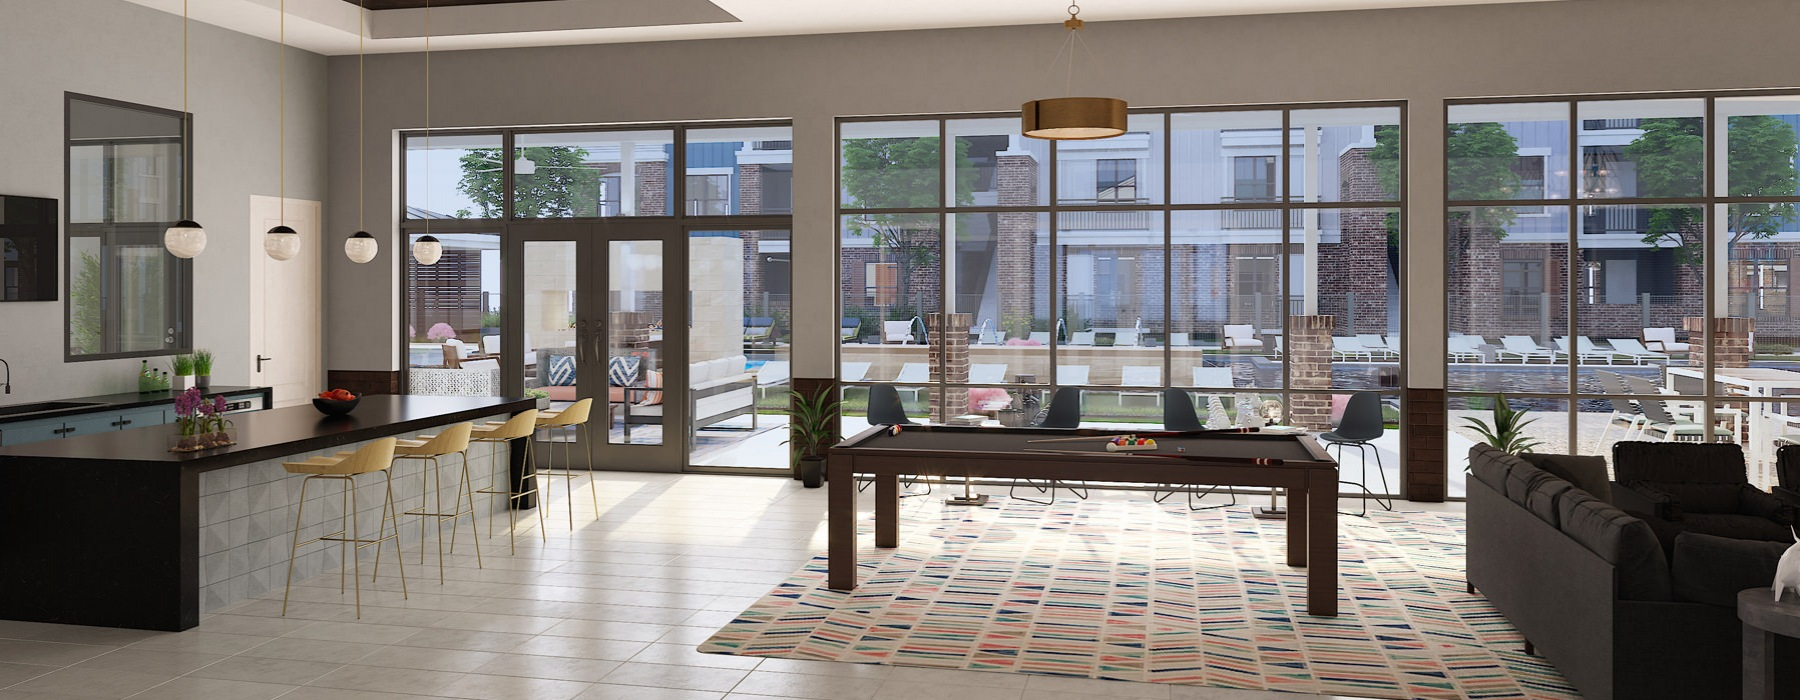 Rendering of Clubroom with High Ceilings and Ample Lighting